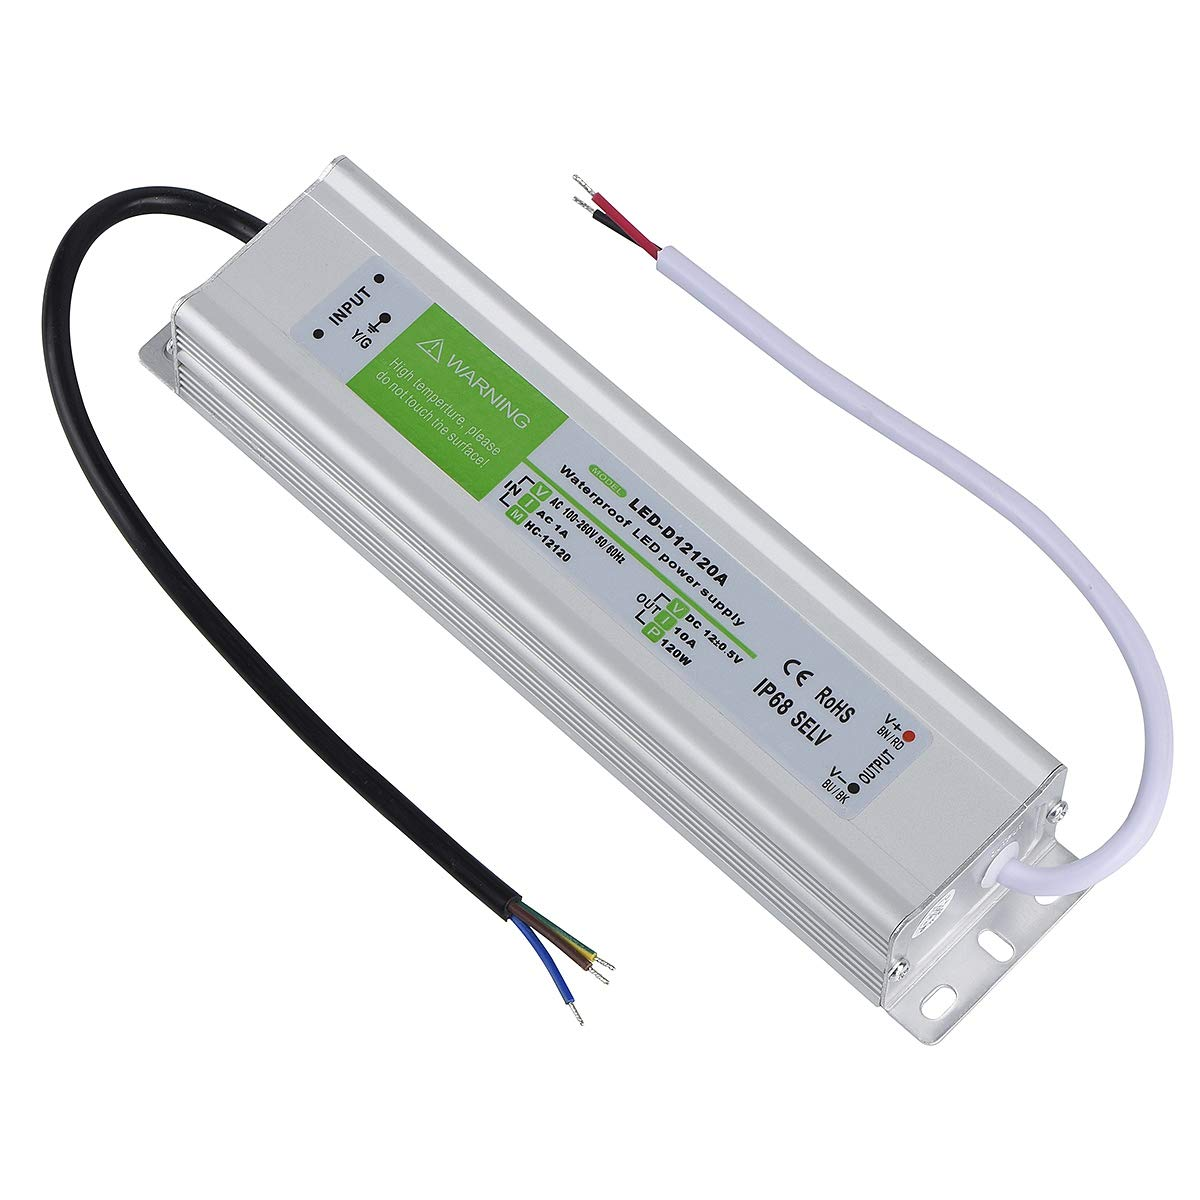 LED Driver 120 Watts Waterproof IP68 Power Supply Transformer Adapter 100V-260V AC to 12V DC Low Voltage Output for LED Light, Computer Project, Outdoor Light and Any 12V DC led Lights